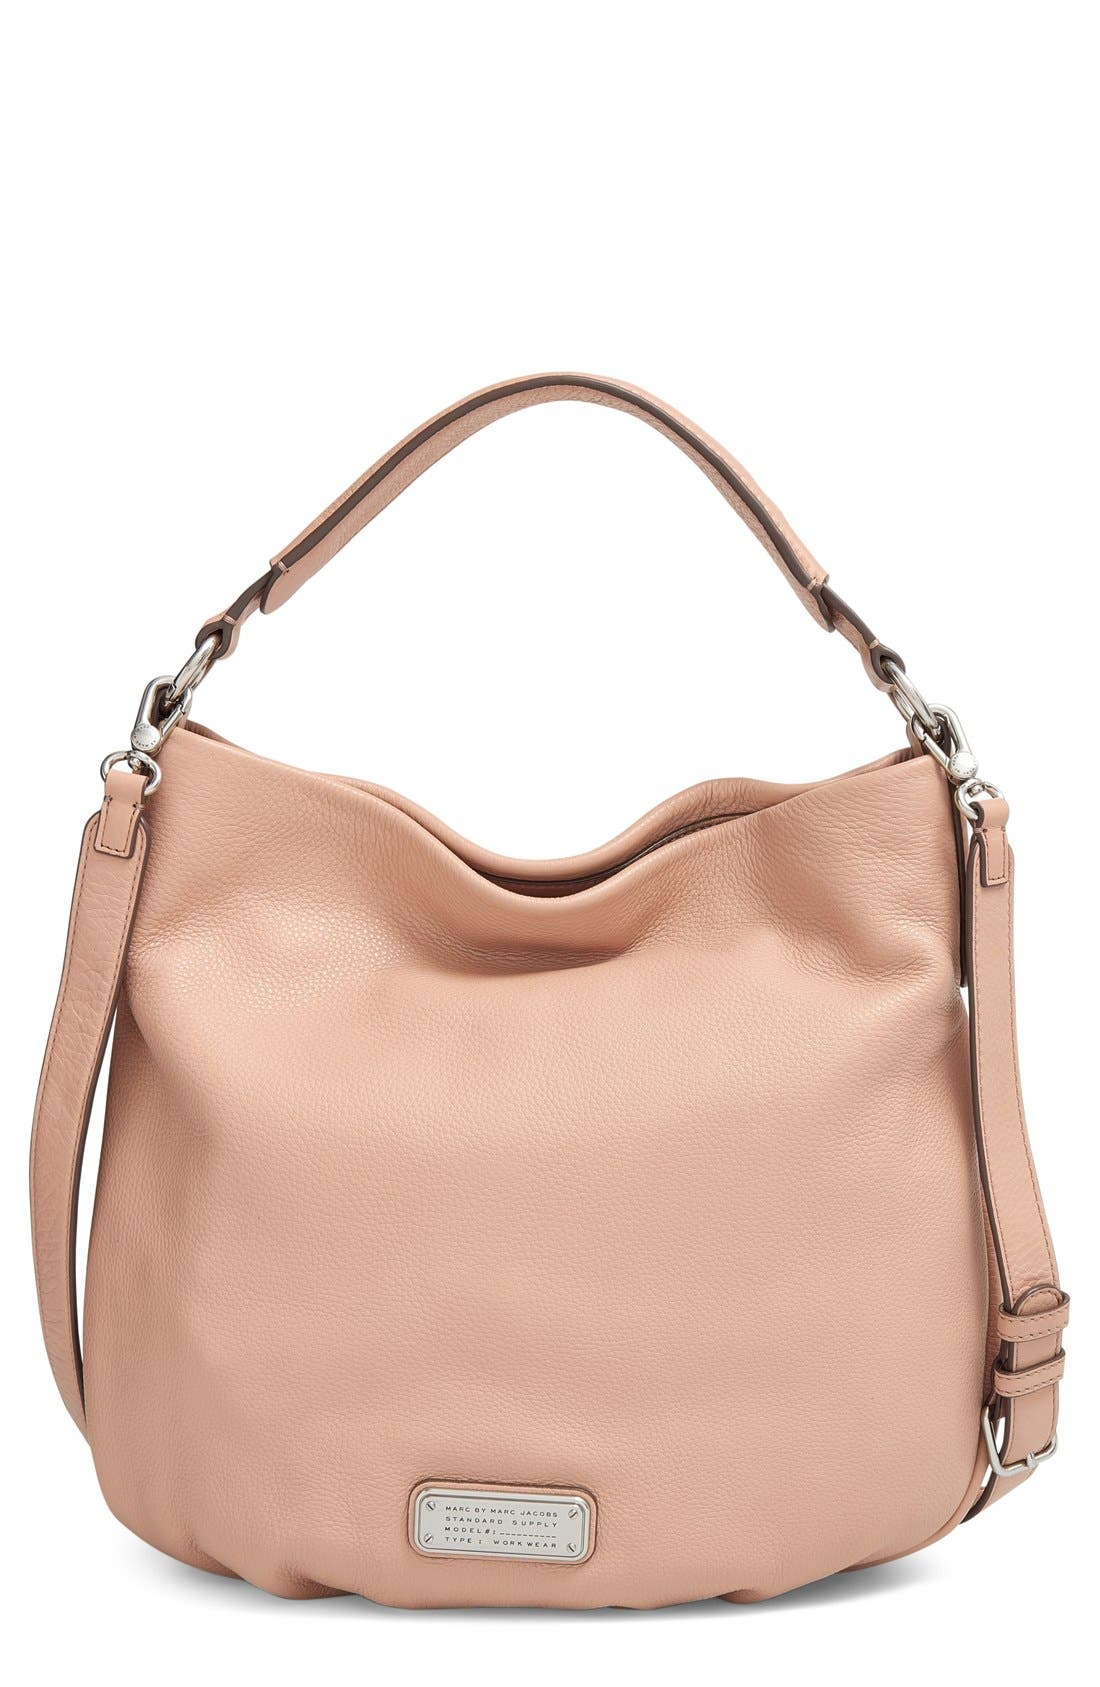 Main Image - MARC BY MARC JACOBS 'New Q Hillier' Hobo